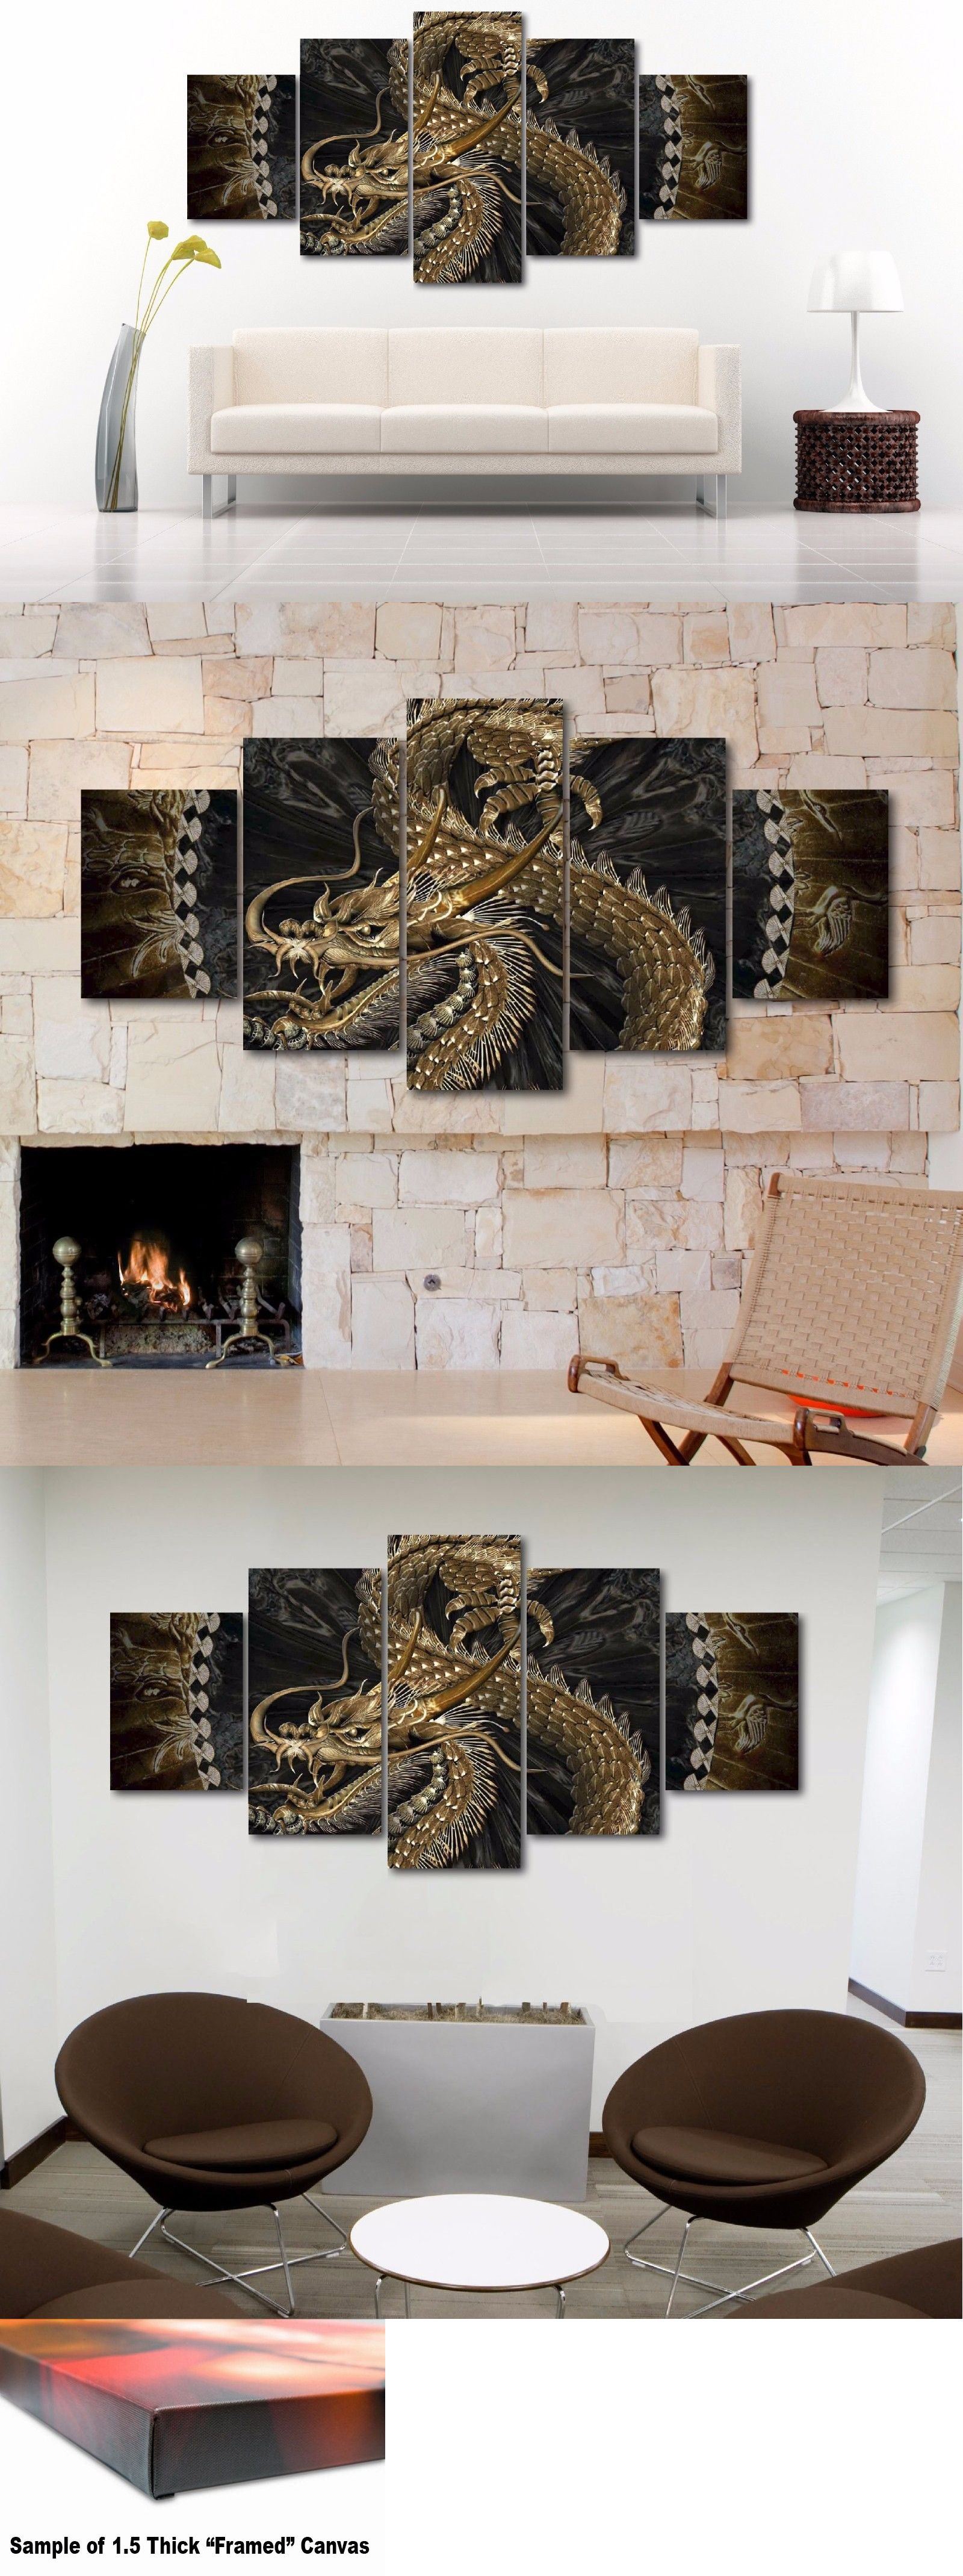 posters and prints 41511 large chinese dragon snake home decor